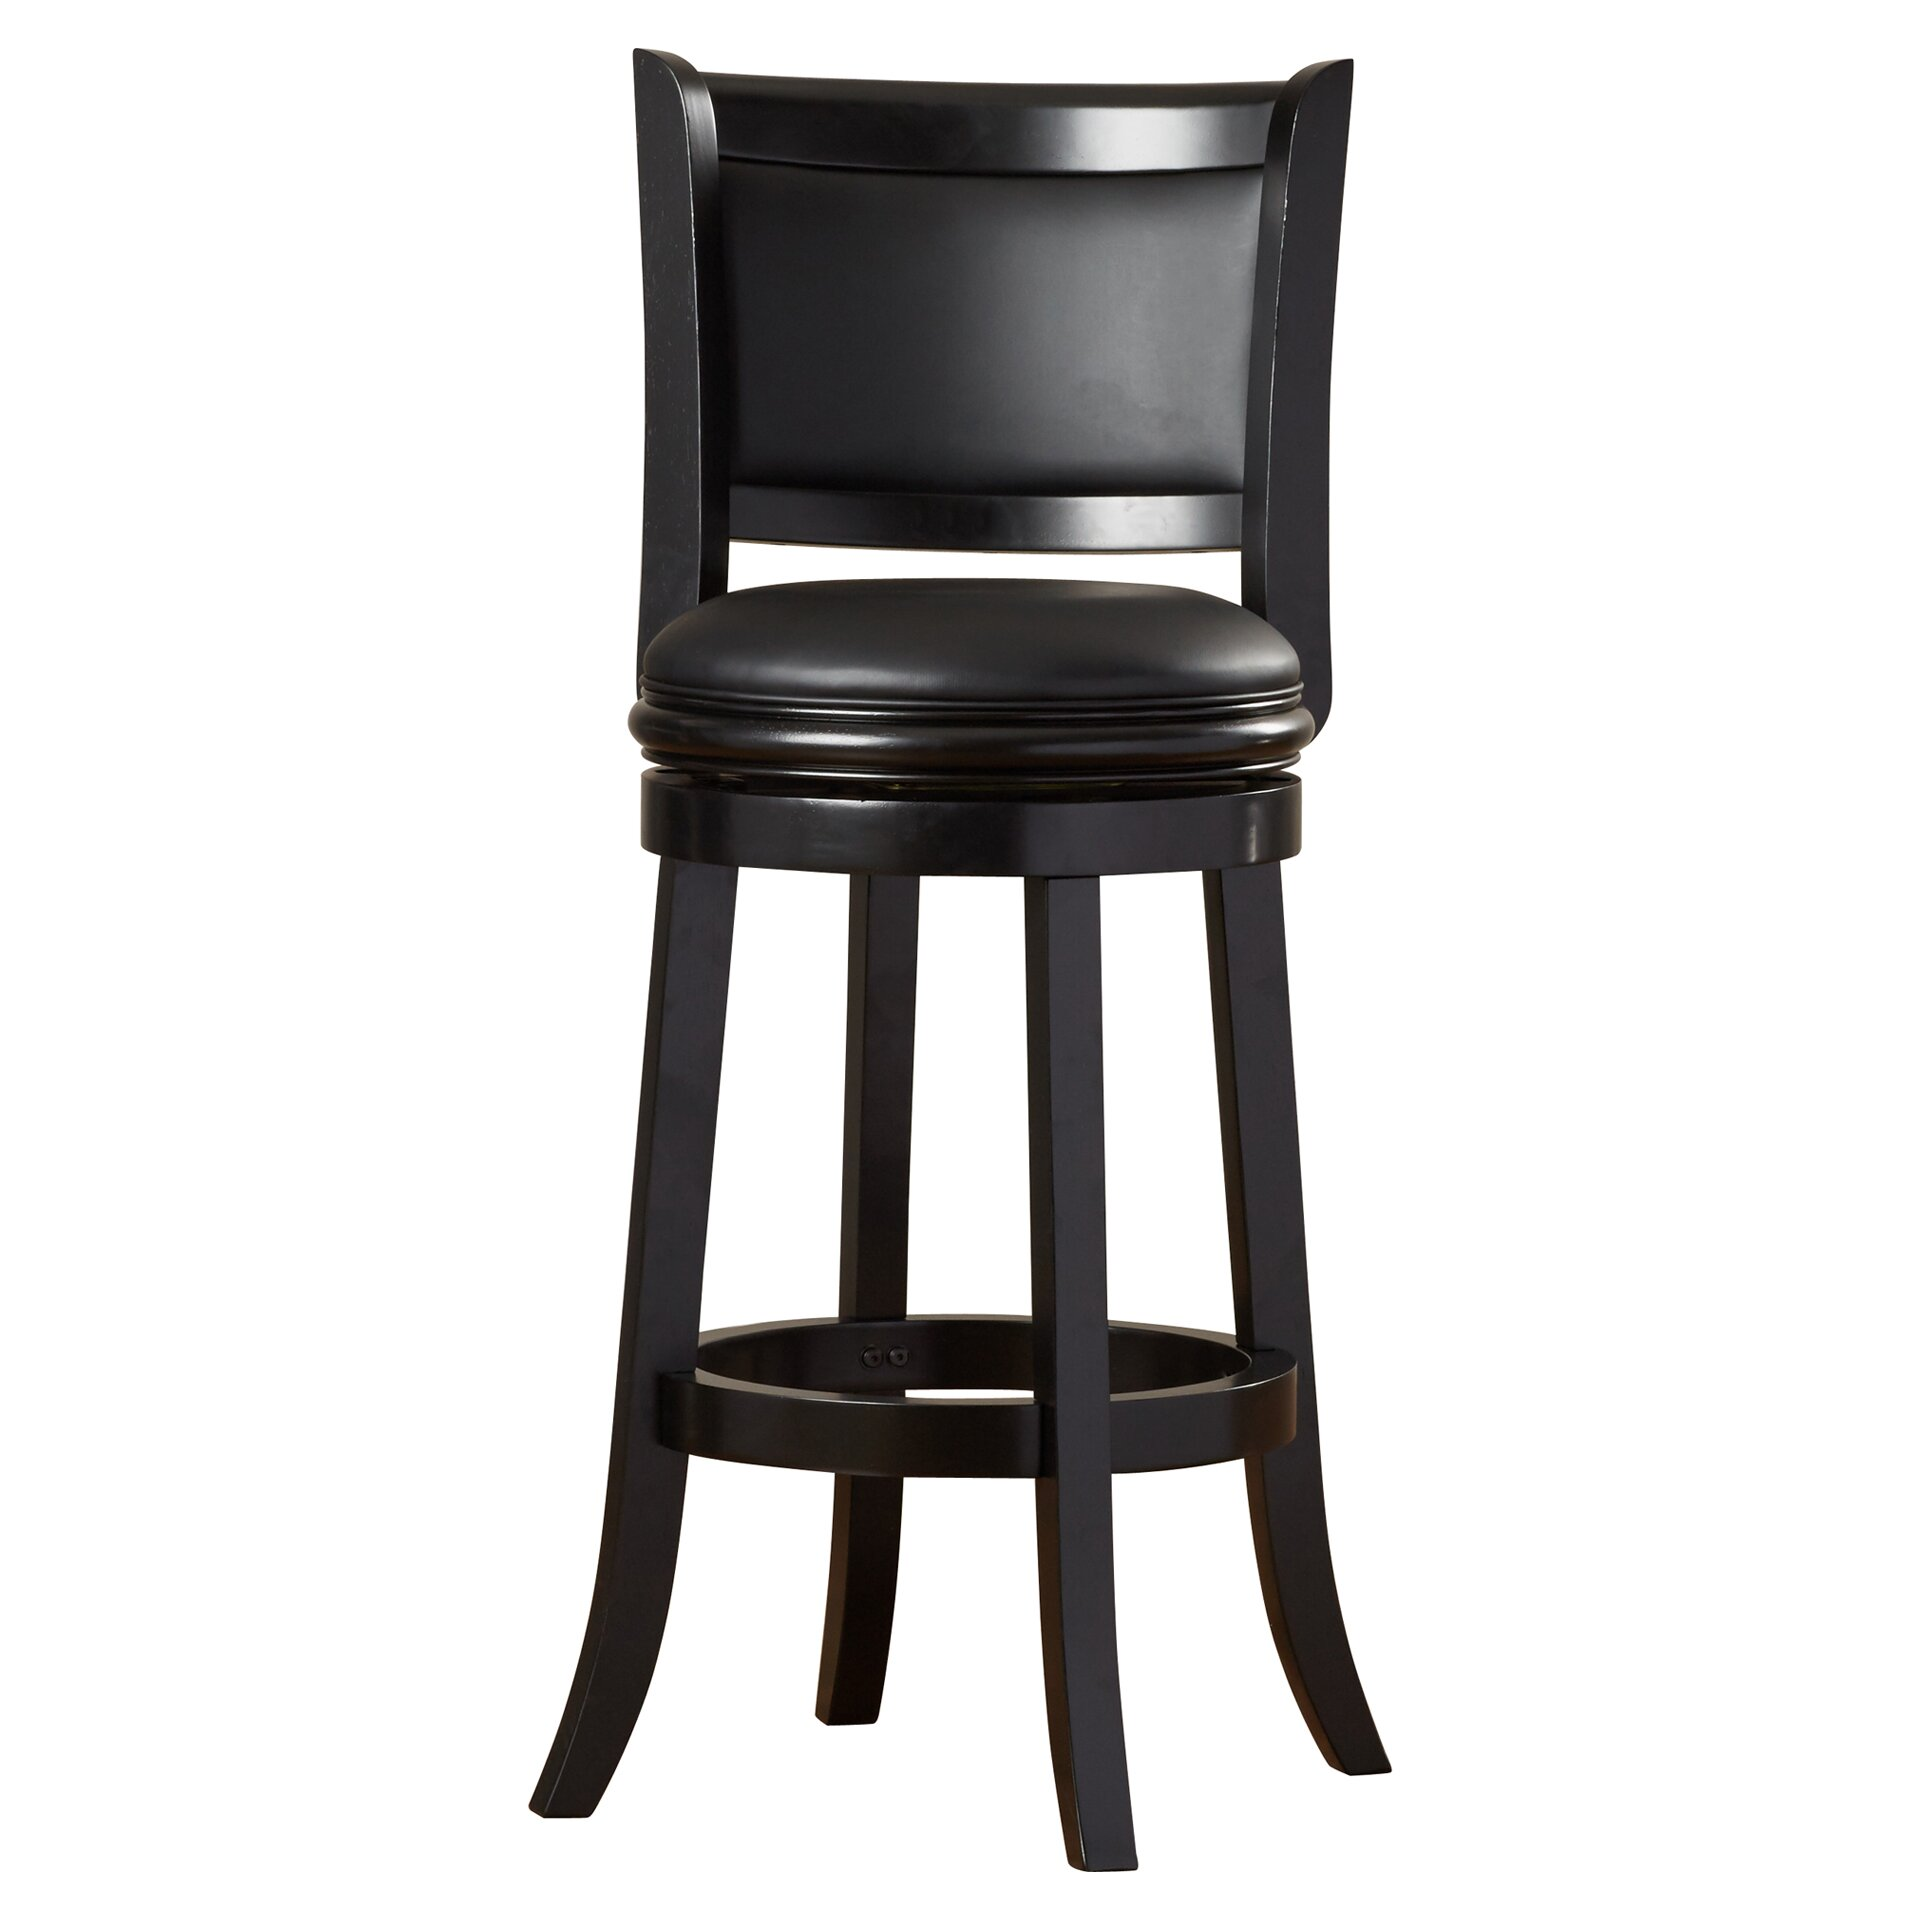 Darby Home Co Orangeville 29quot Swivel Bar Stool amp Reviews  : Orangeville 29 Swivel Bar Stool with Cushion DRBC1460 from www.wayfair.com size 1920 x 1920 jpeg 192kB